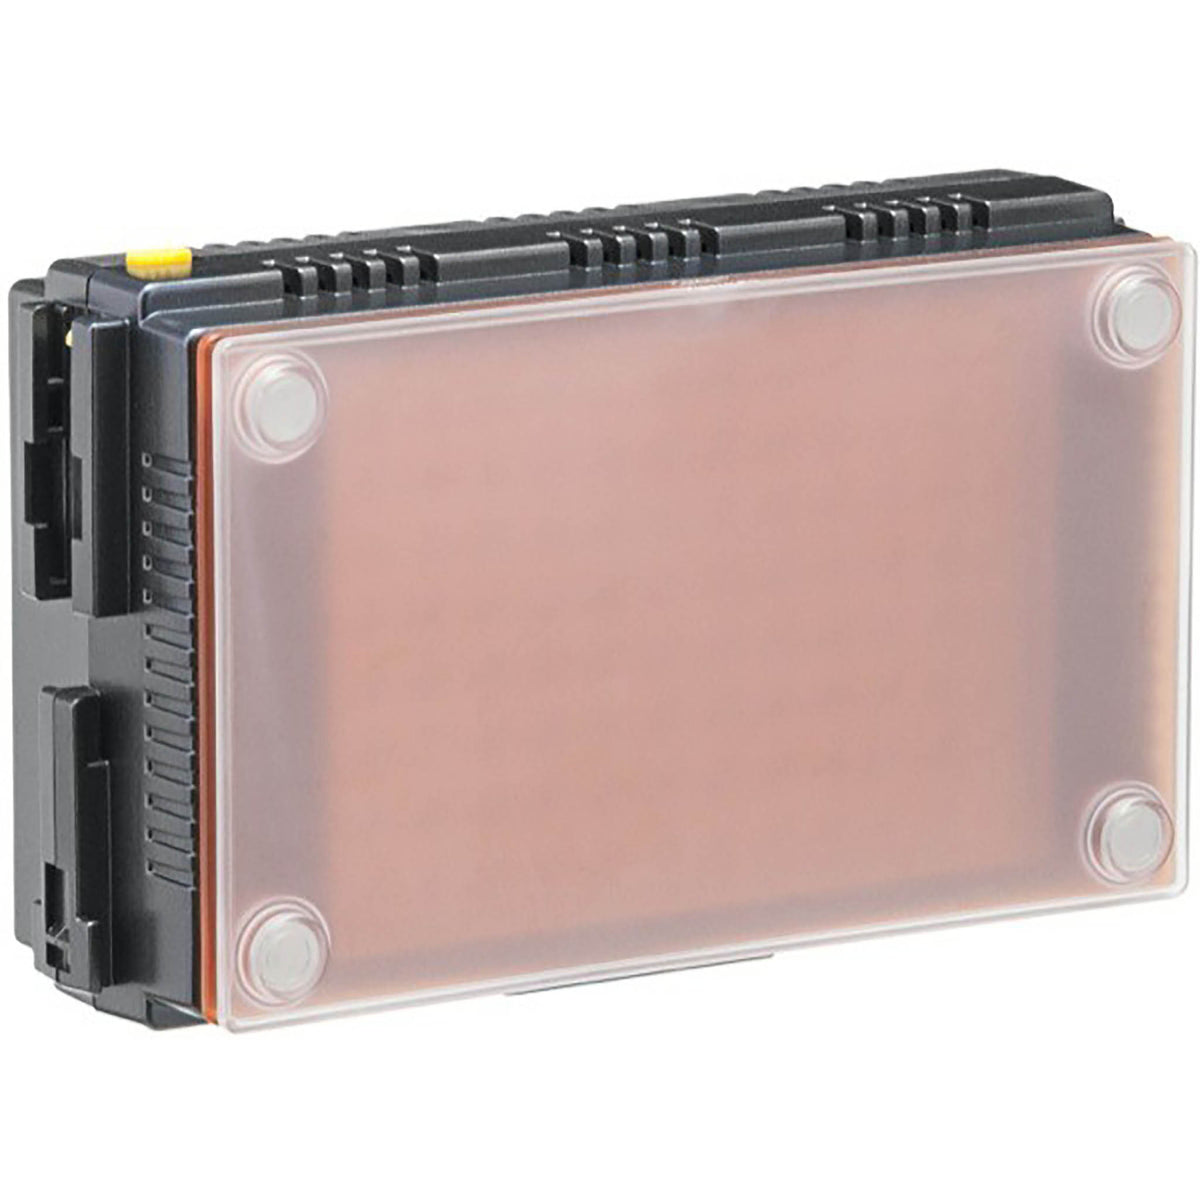 F&V Z96 LED light with diffusion and tungsten filters